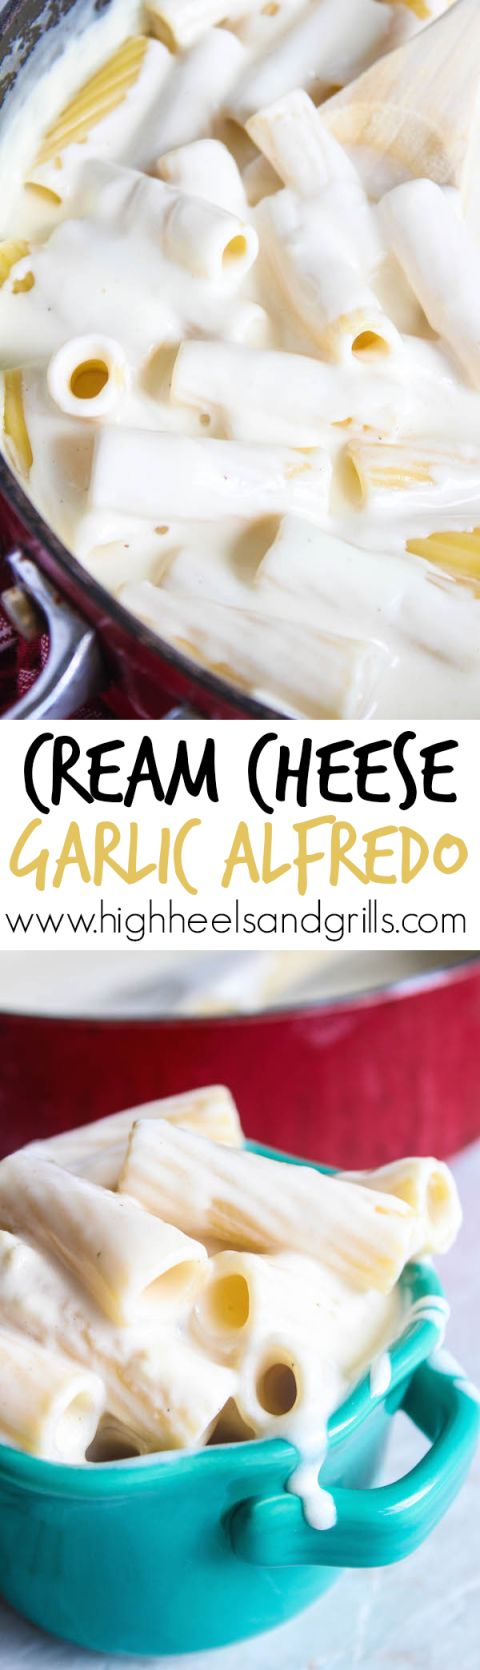 Cream Cheese Garlic Alfredo - The easiest alfredo I have ever made and ...